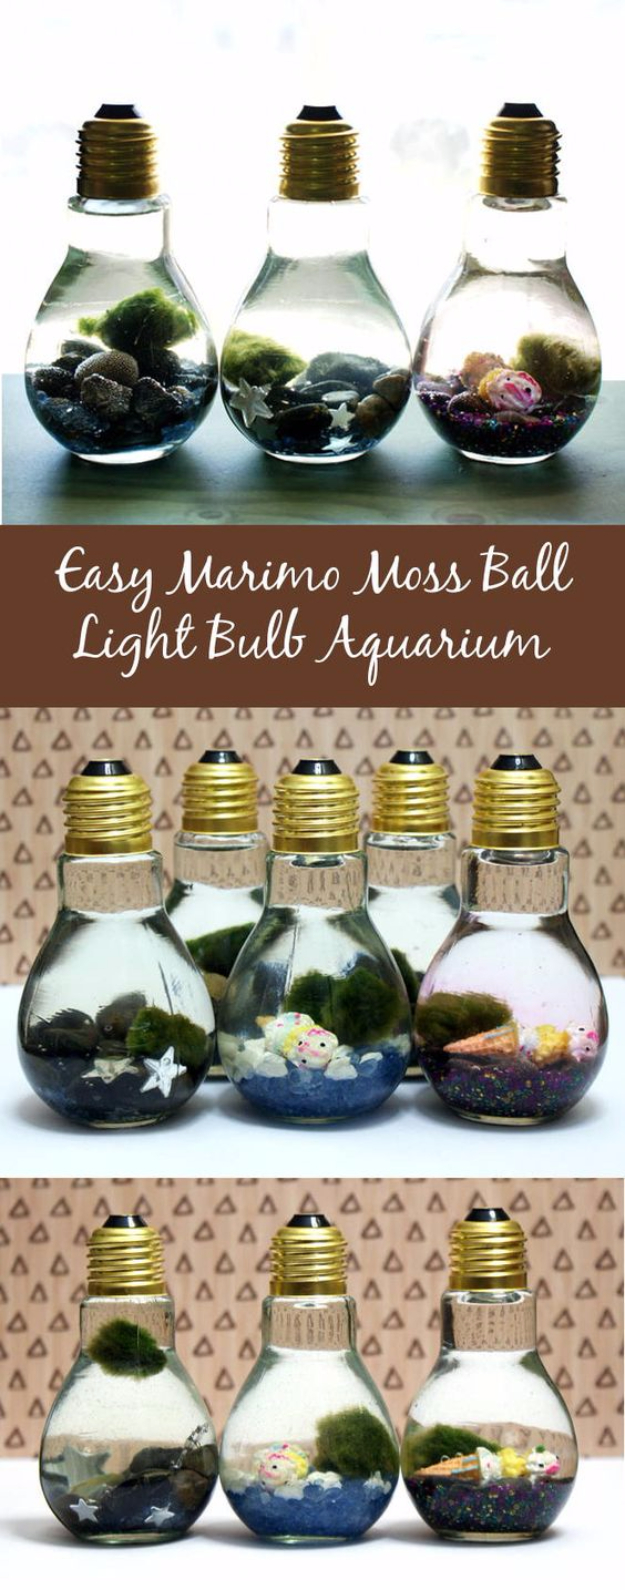 Easy DIY Projects - Easy Marimo Moss Ball DIY Light Bulb Aquarium - Easy DIY Crafts and Projects - Simple Craft Ideas for Beginners, Cool Crafts To Make and Sell, Simple Home Decor, Fast DIY Gifts, Cheap and Quick Project Tutorials #diy #crafts #easycrafts